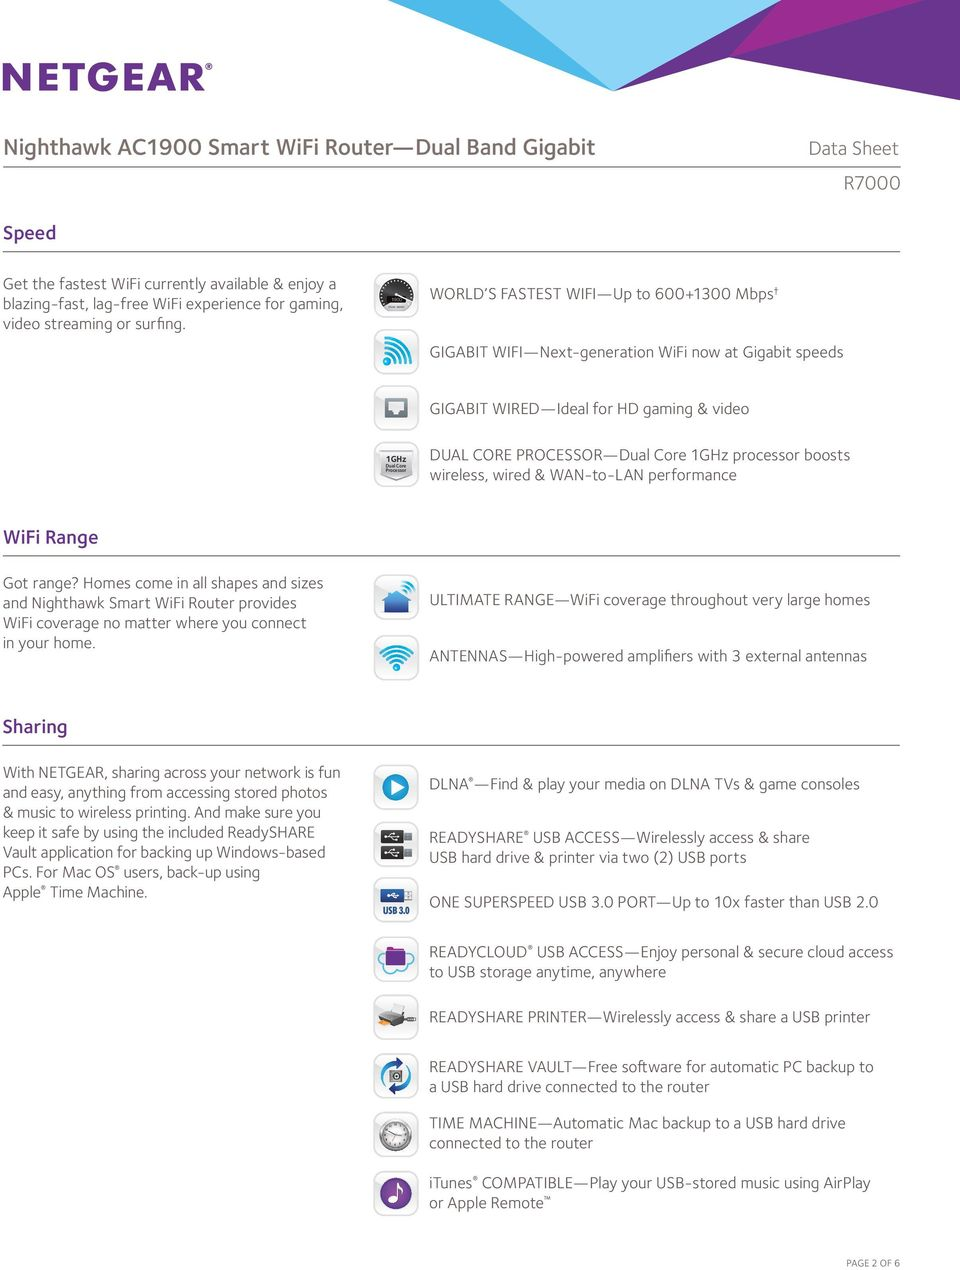 NEW! CLOUD APPS ReadyCLOUD & genie remote access - PDF